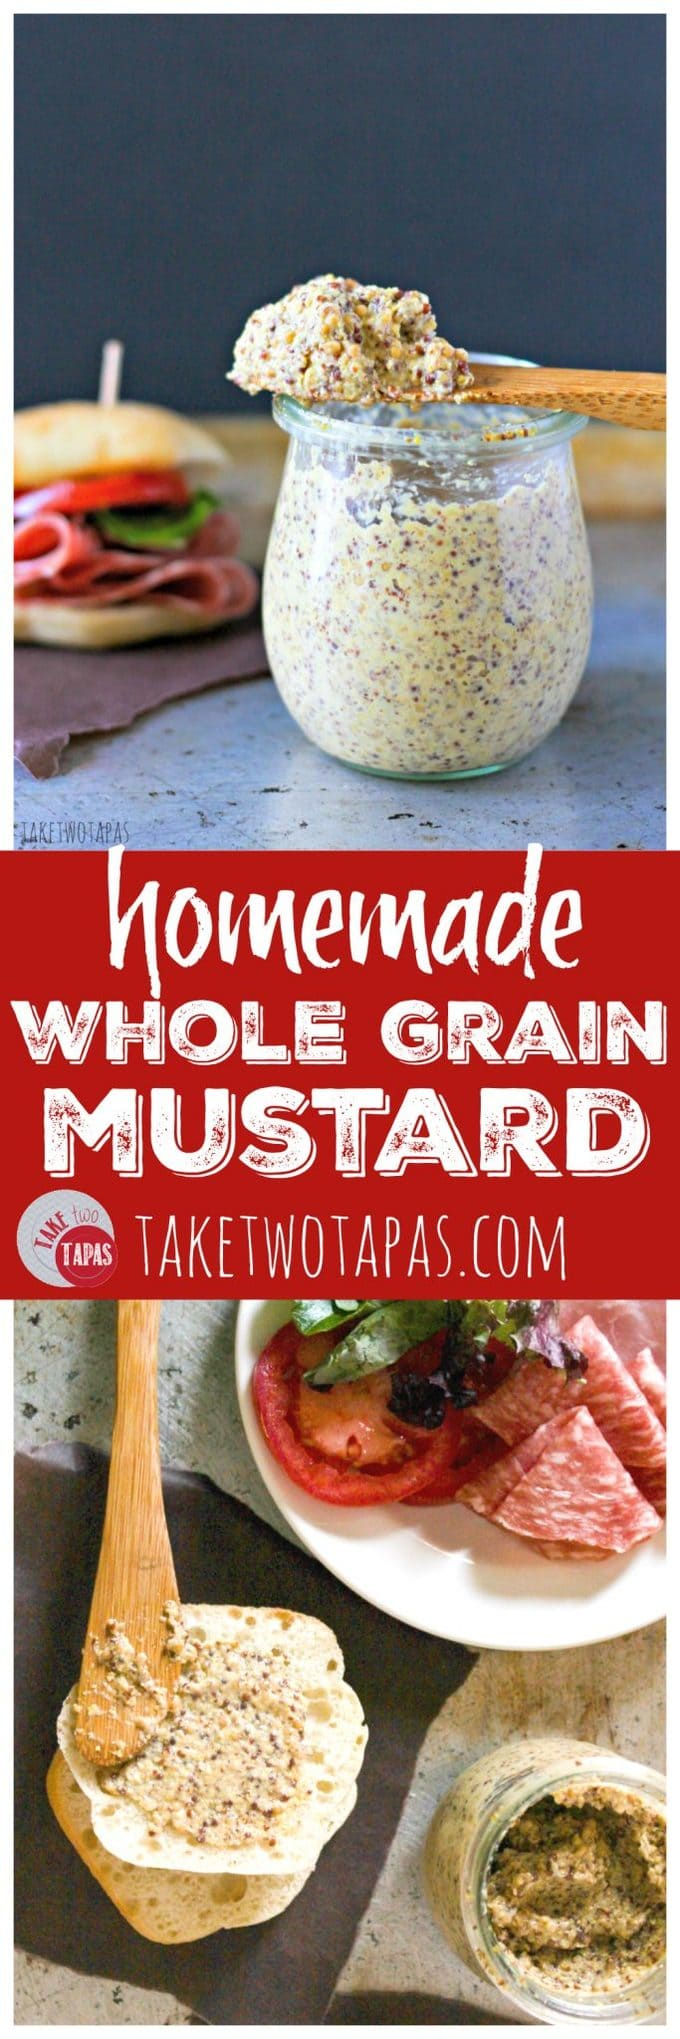 Getting tired of buying mustard? Make your own! It's simple and you can add your own flavors! Customize your own condiments to match your menu! Homemade Whole Grain Mustard Recipe | Take Two Tapas | #Homemade #WholeGrain #Mustard #MustardSeeds #Pickled